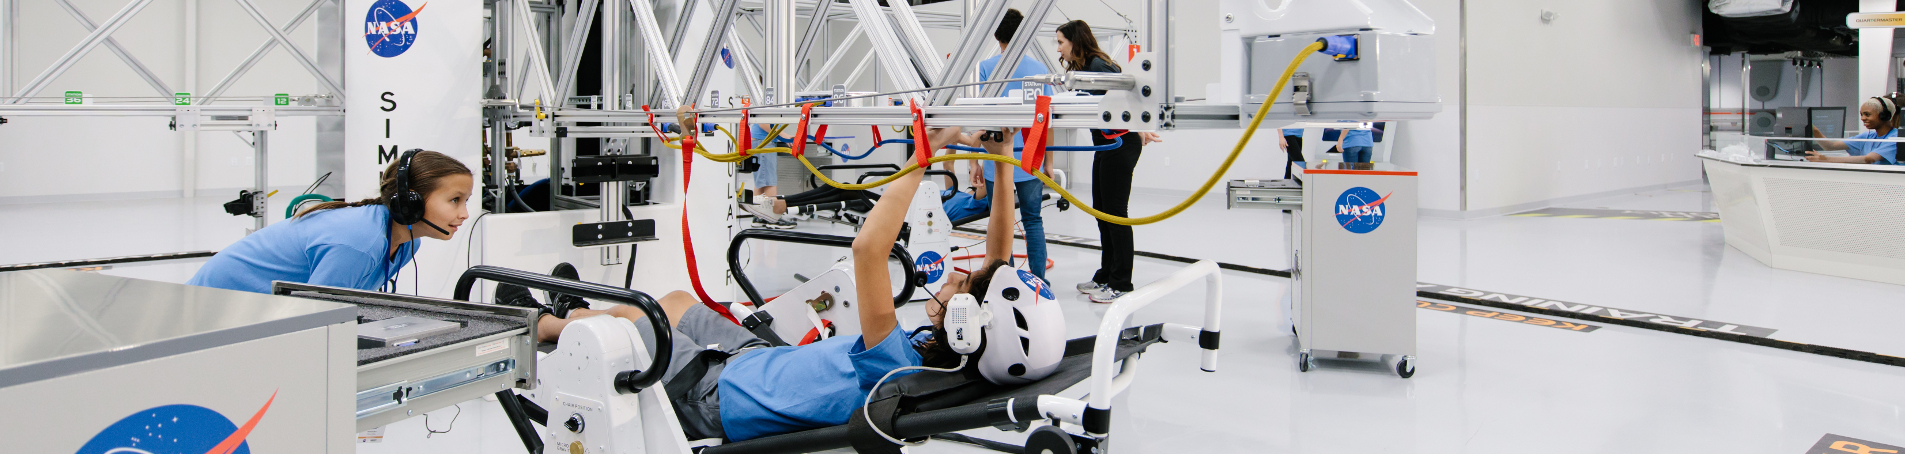 Spacewalk Training Simulator